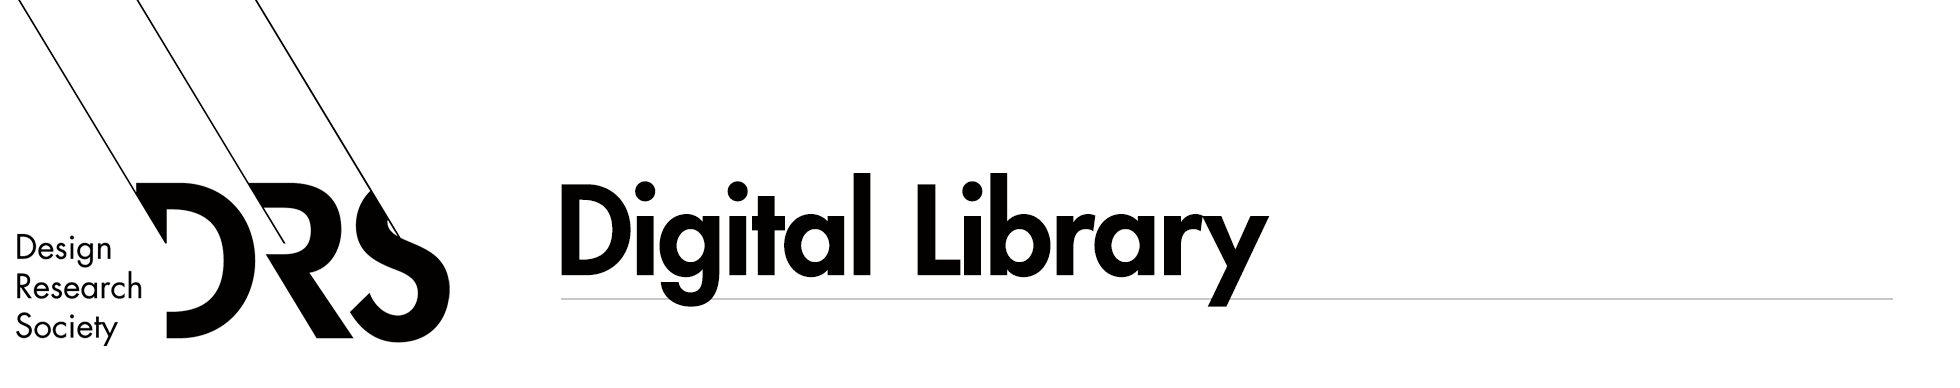 DRS Digital Library